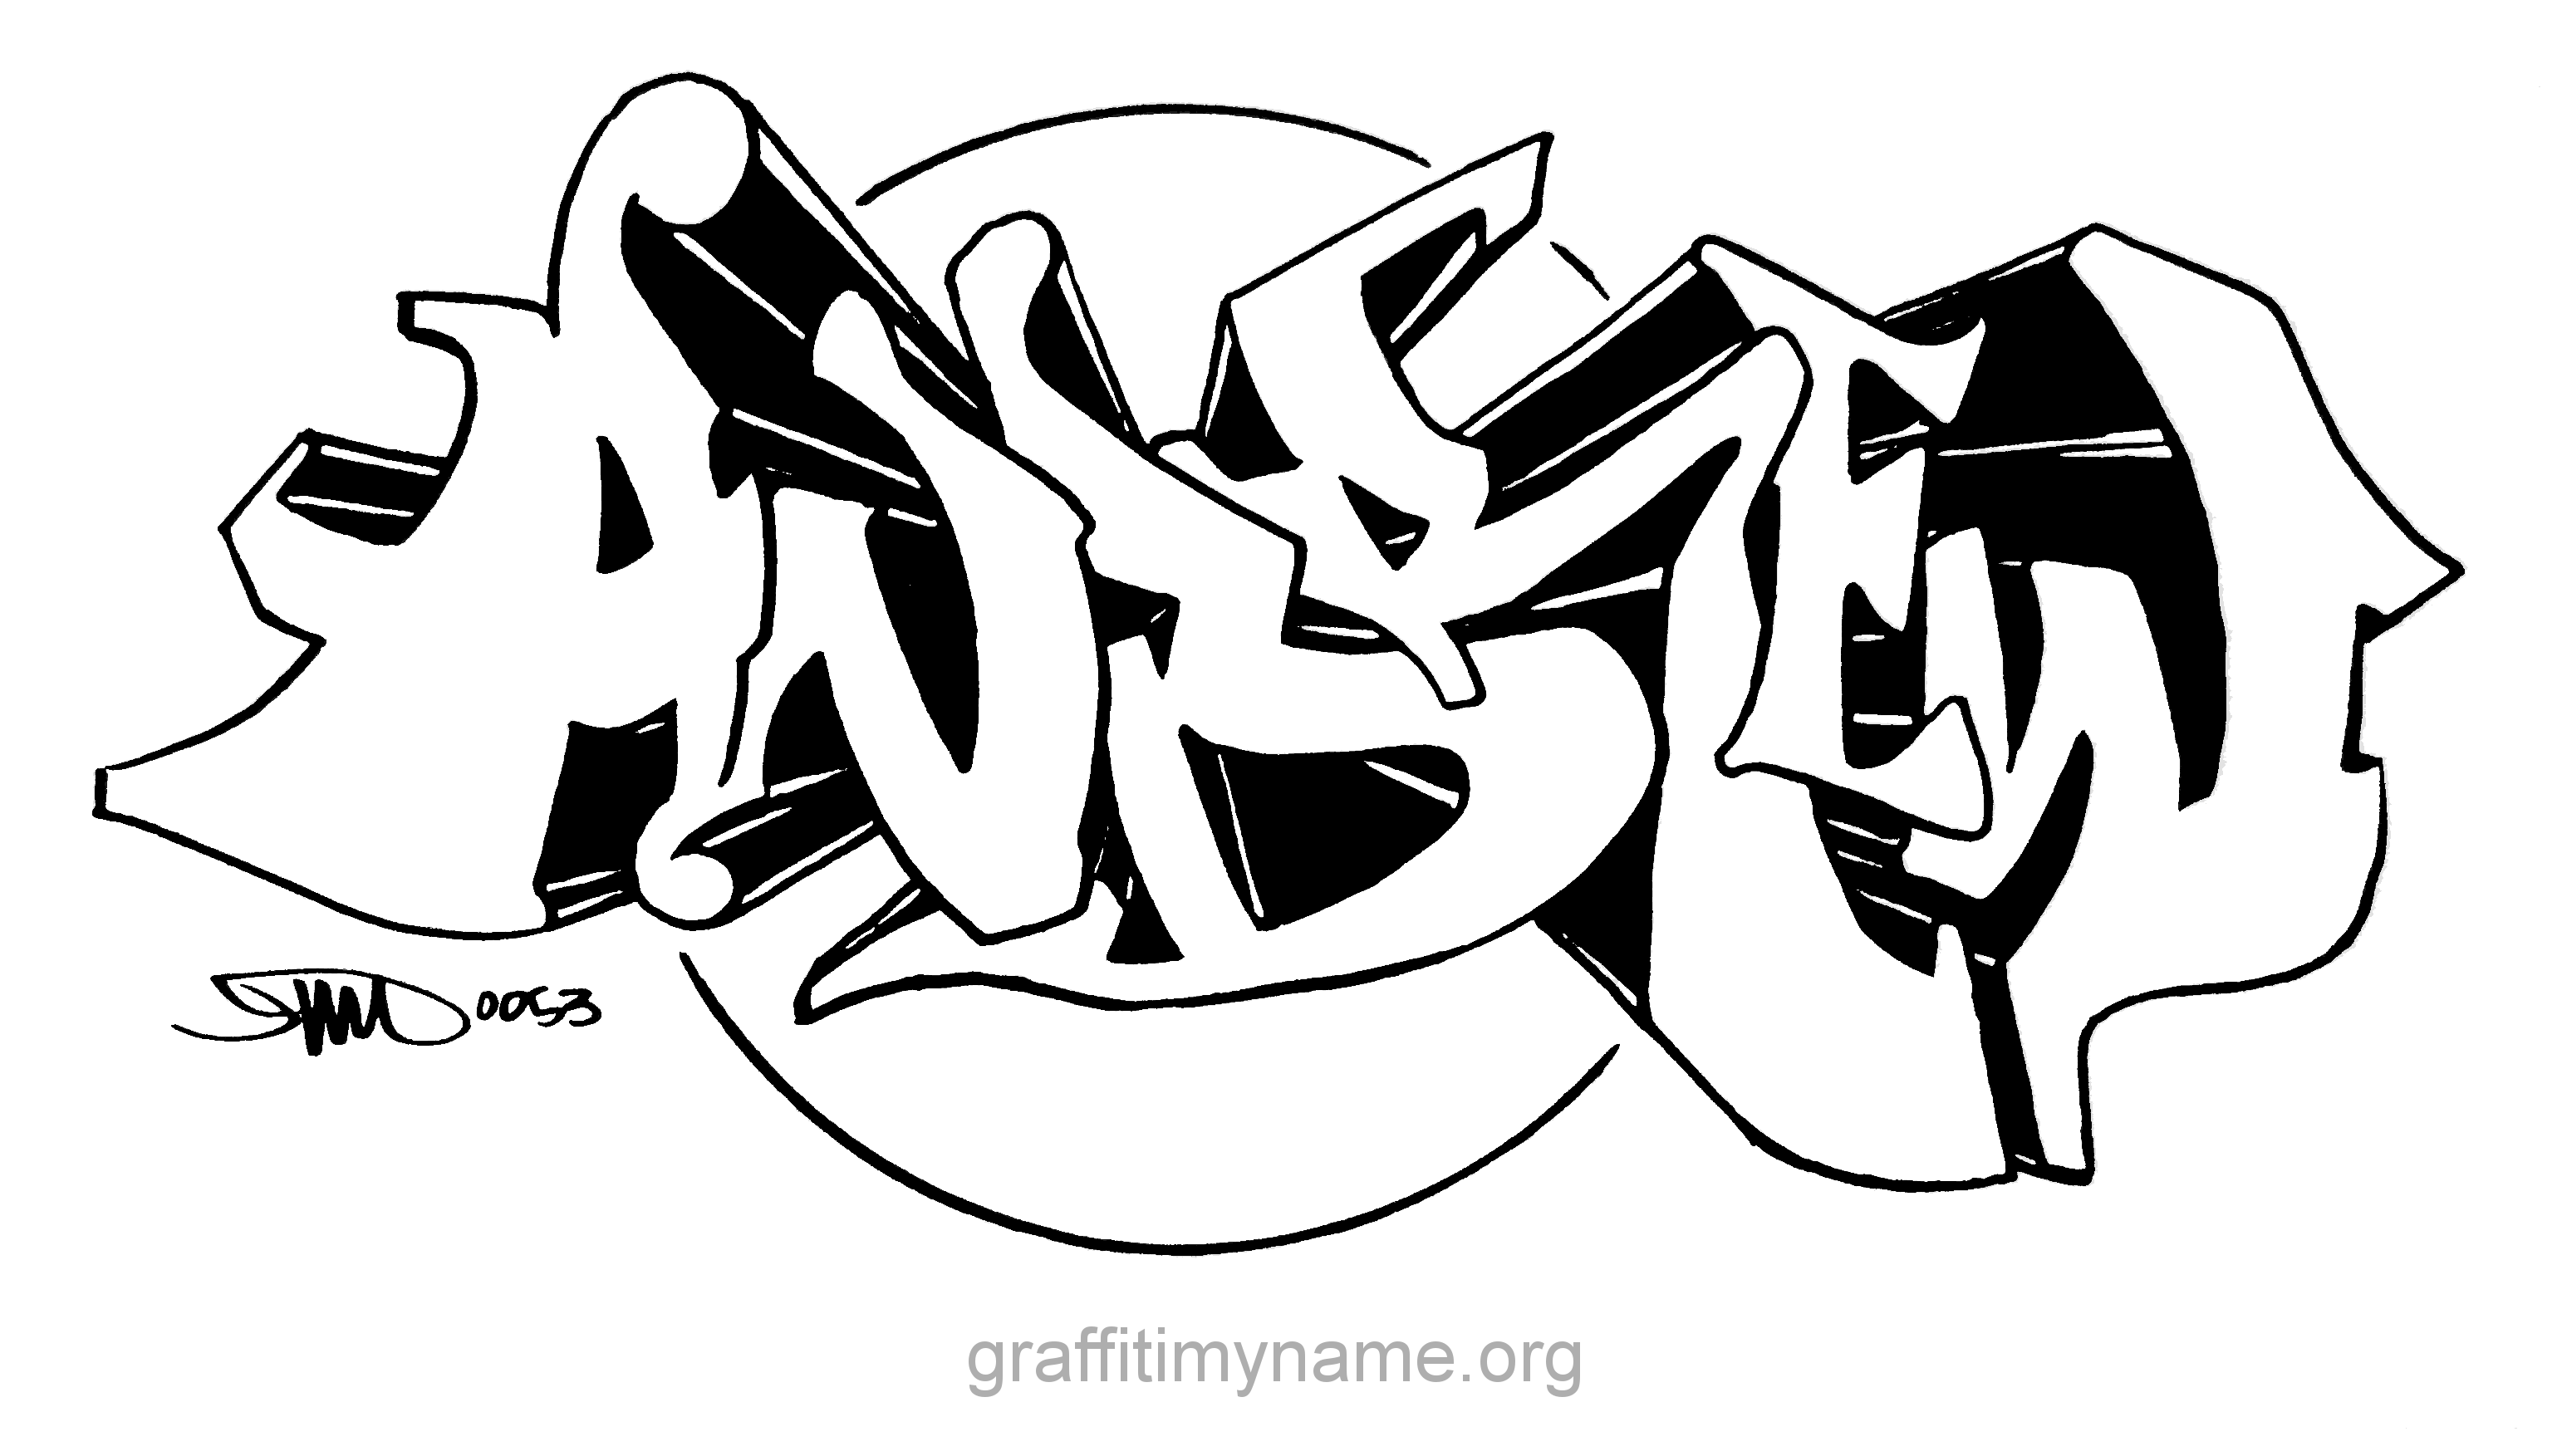 Andrew Graffiti Name Coloring Pages Sketch Coloring Page.